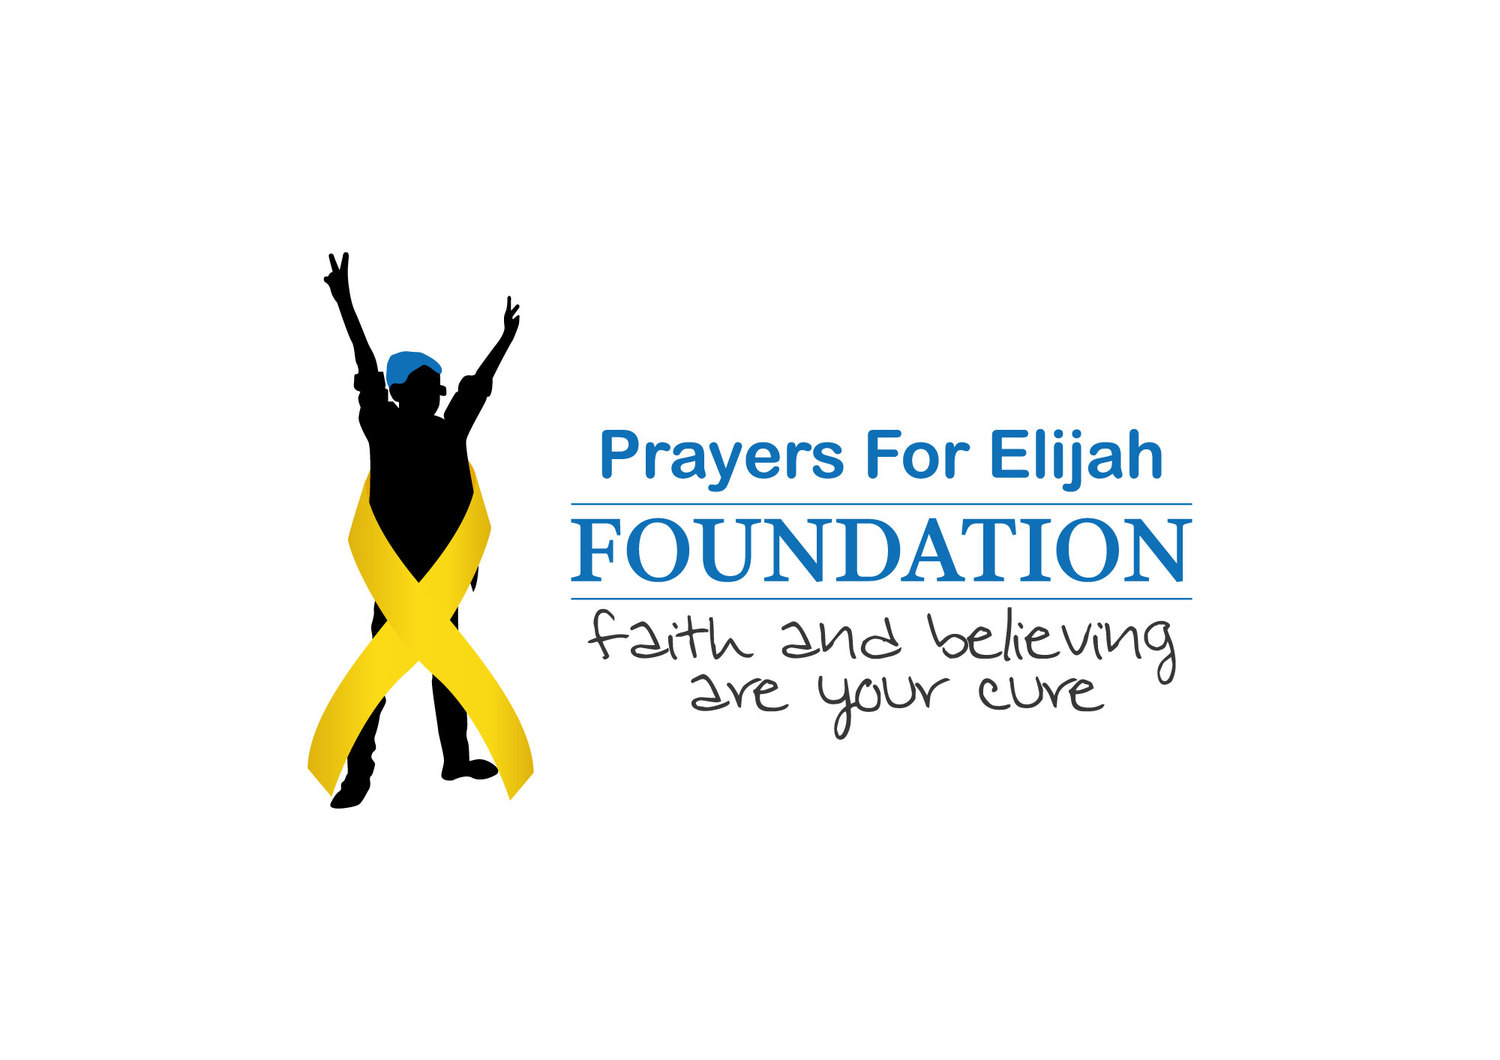 Prayers for Elijah Foundation